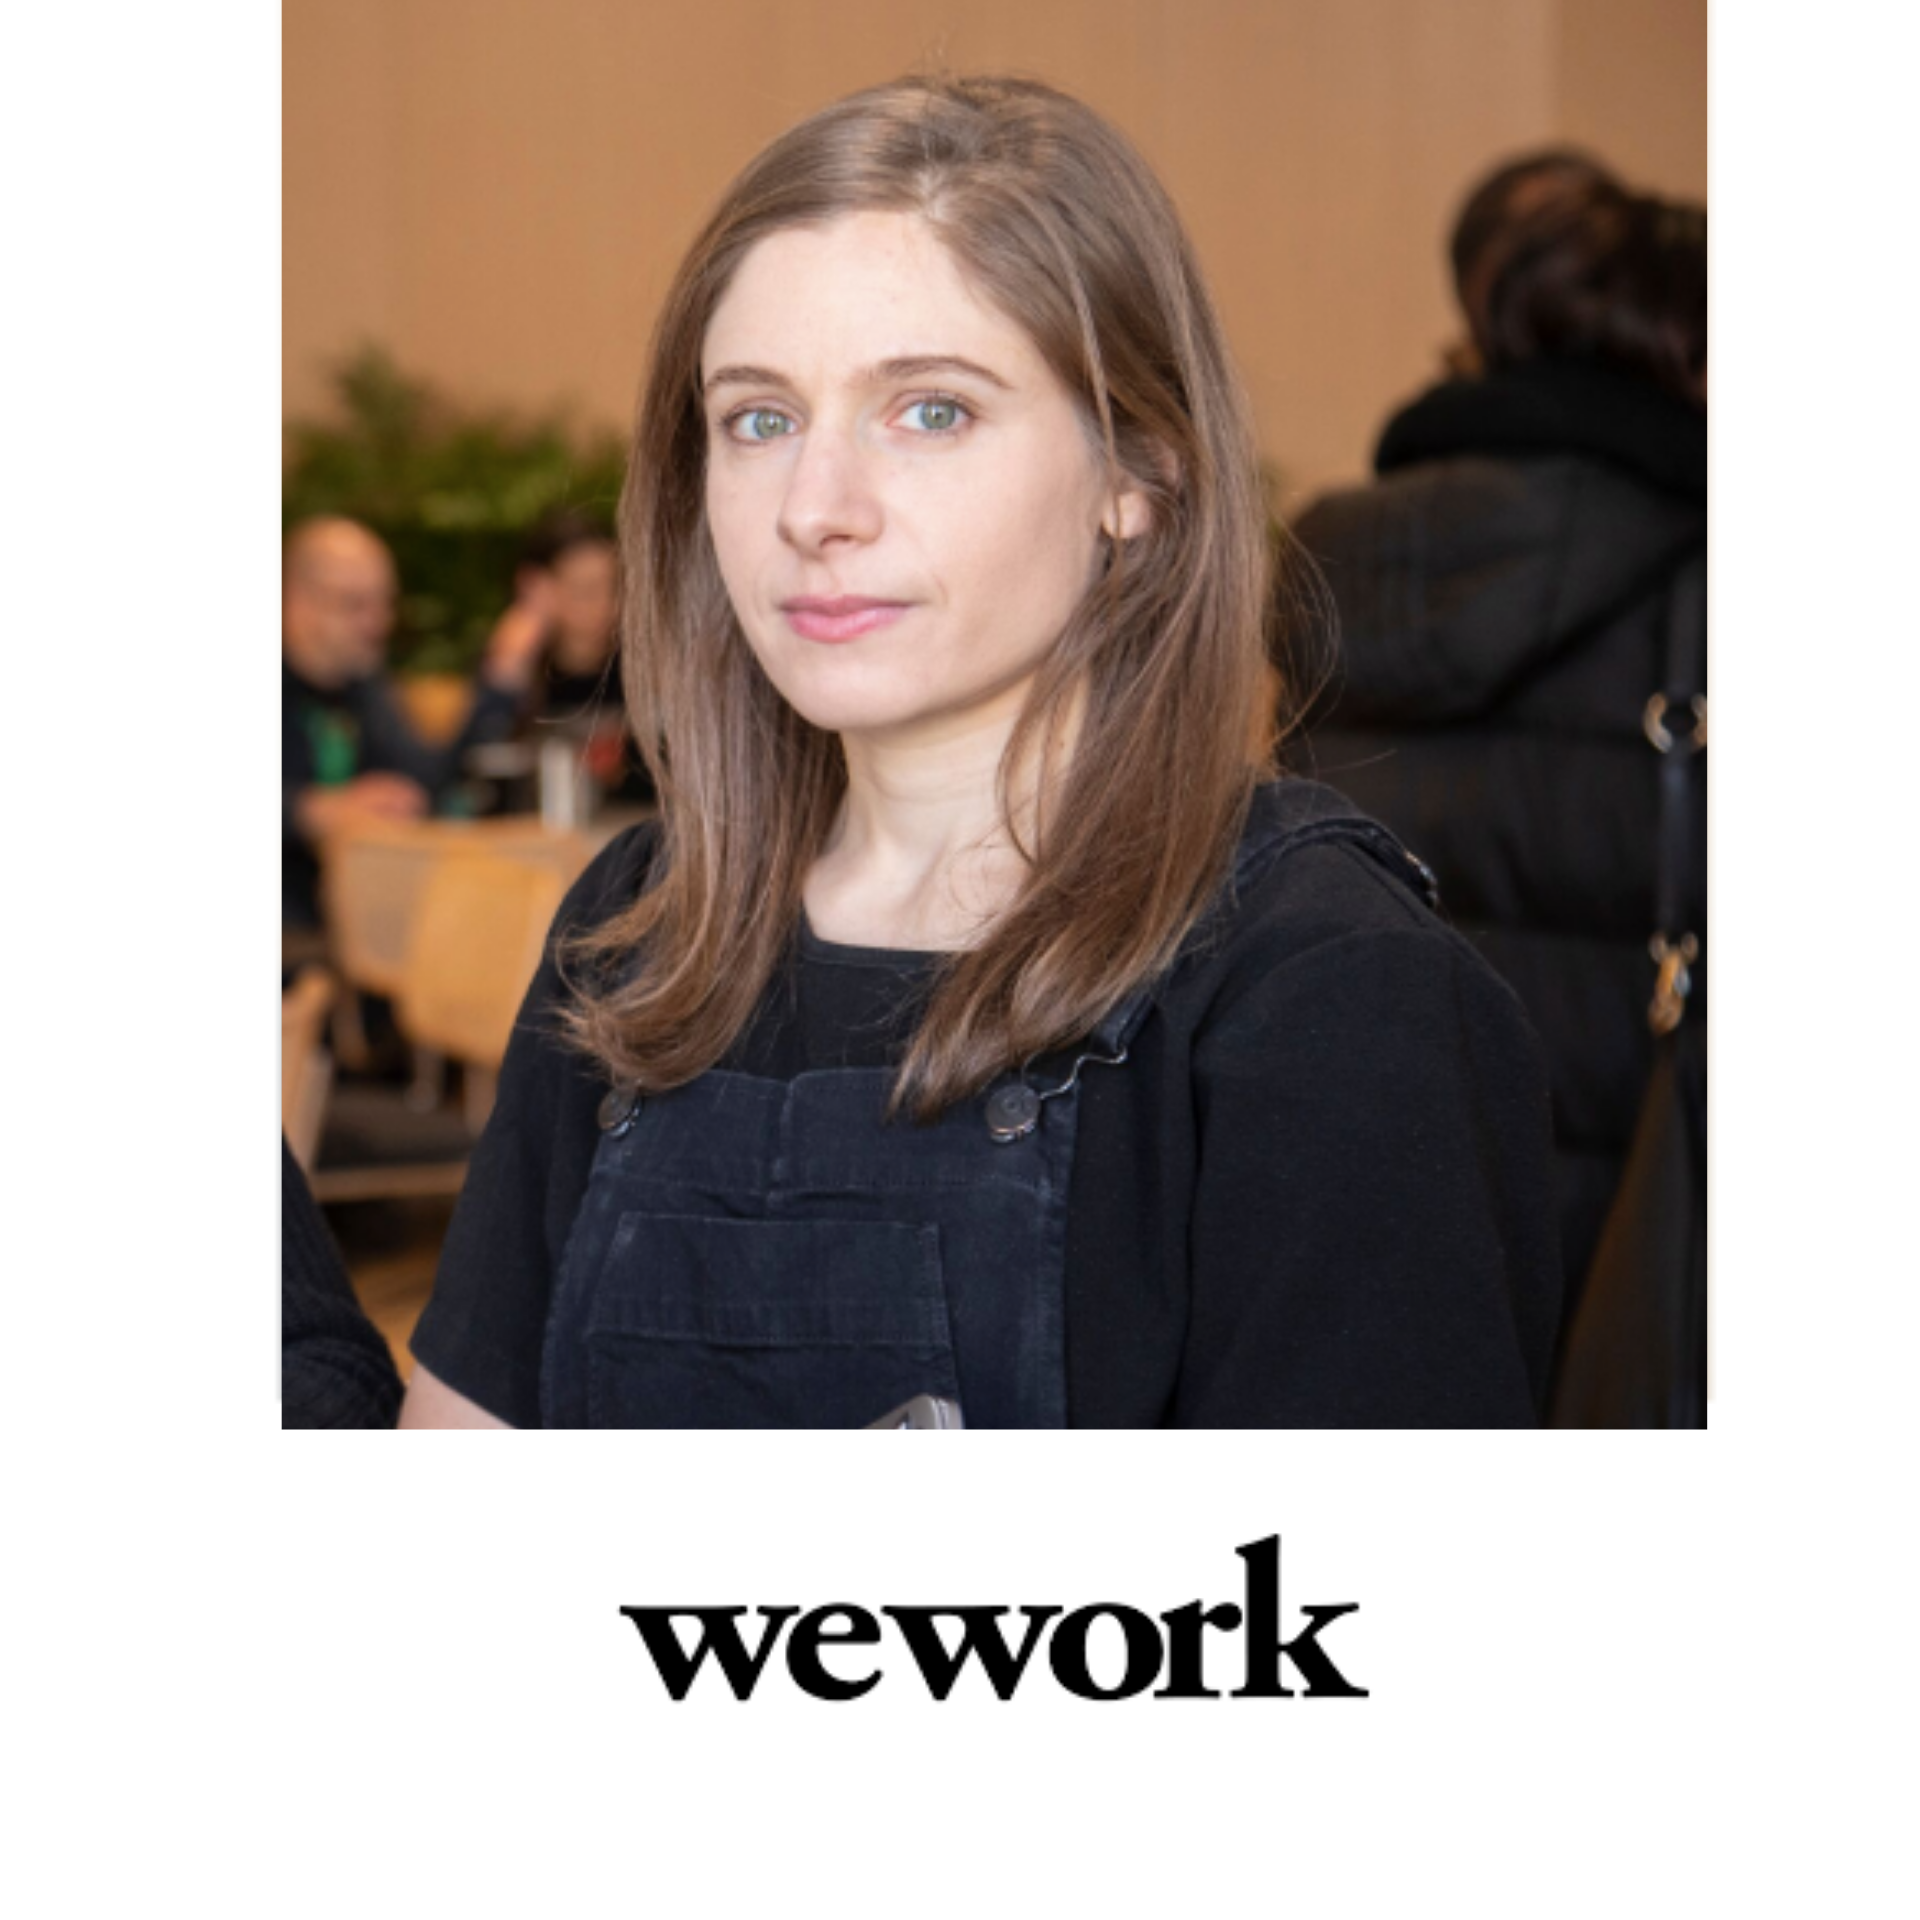 WeWork - Leah Weiss